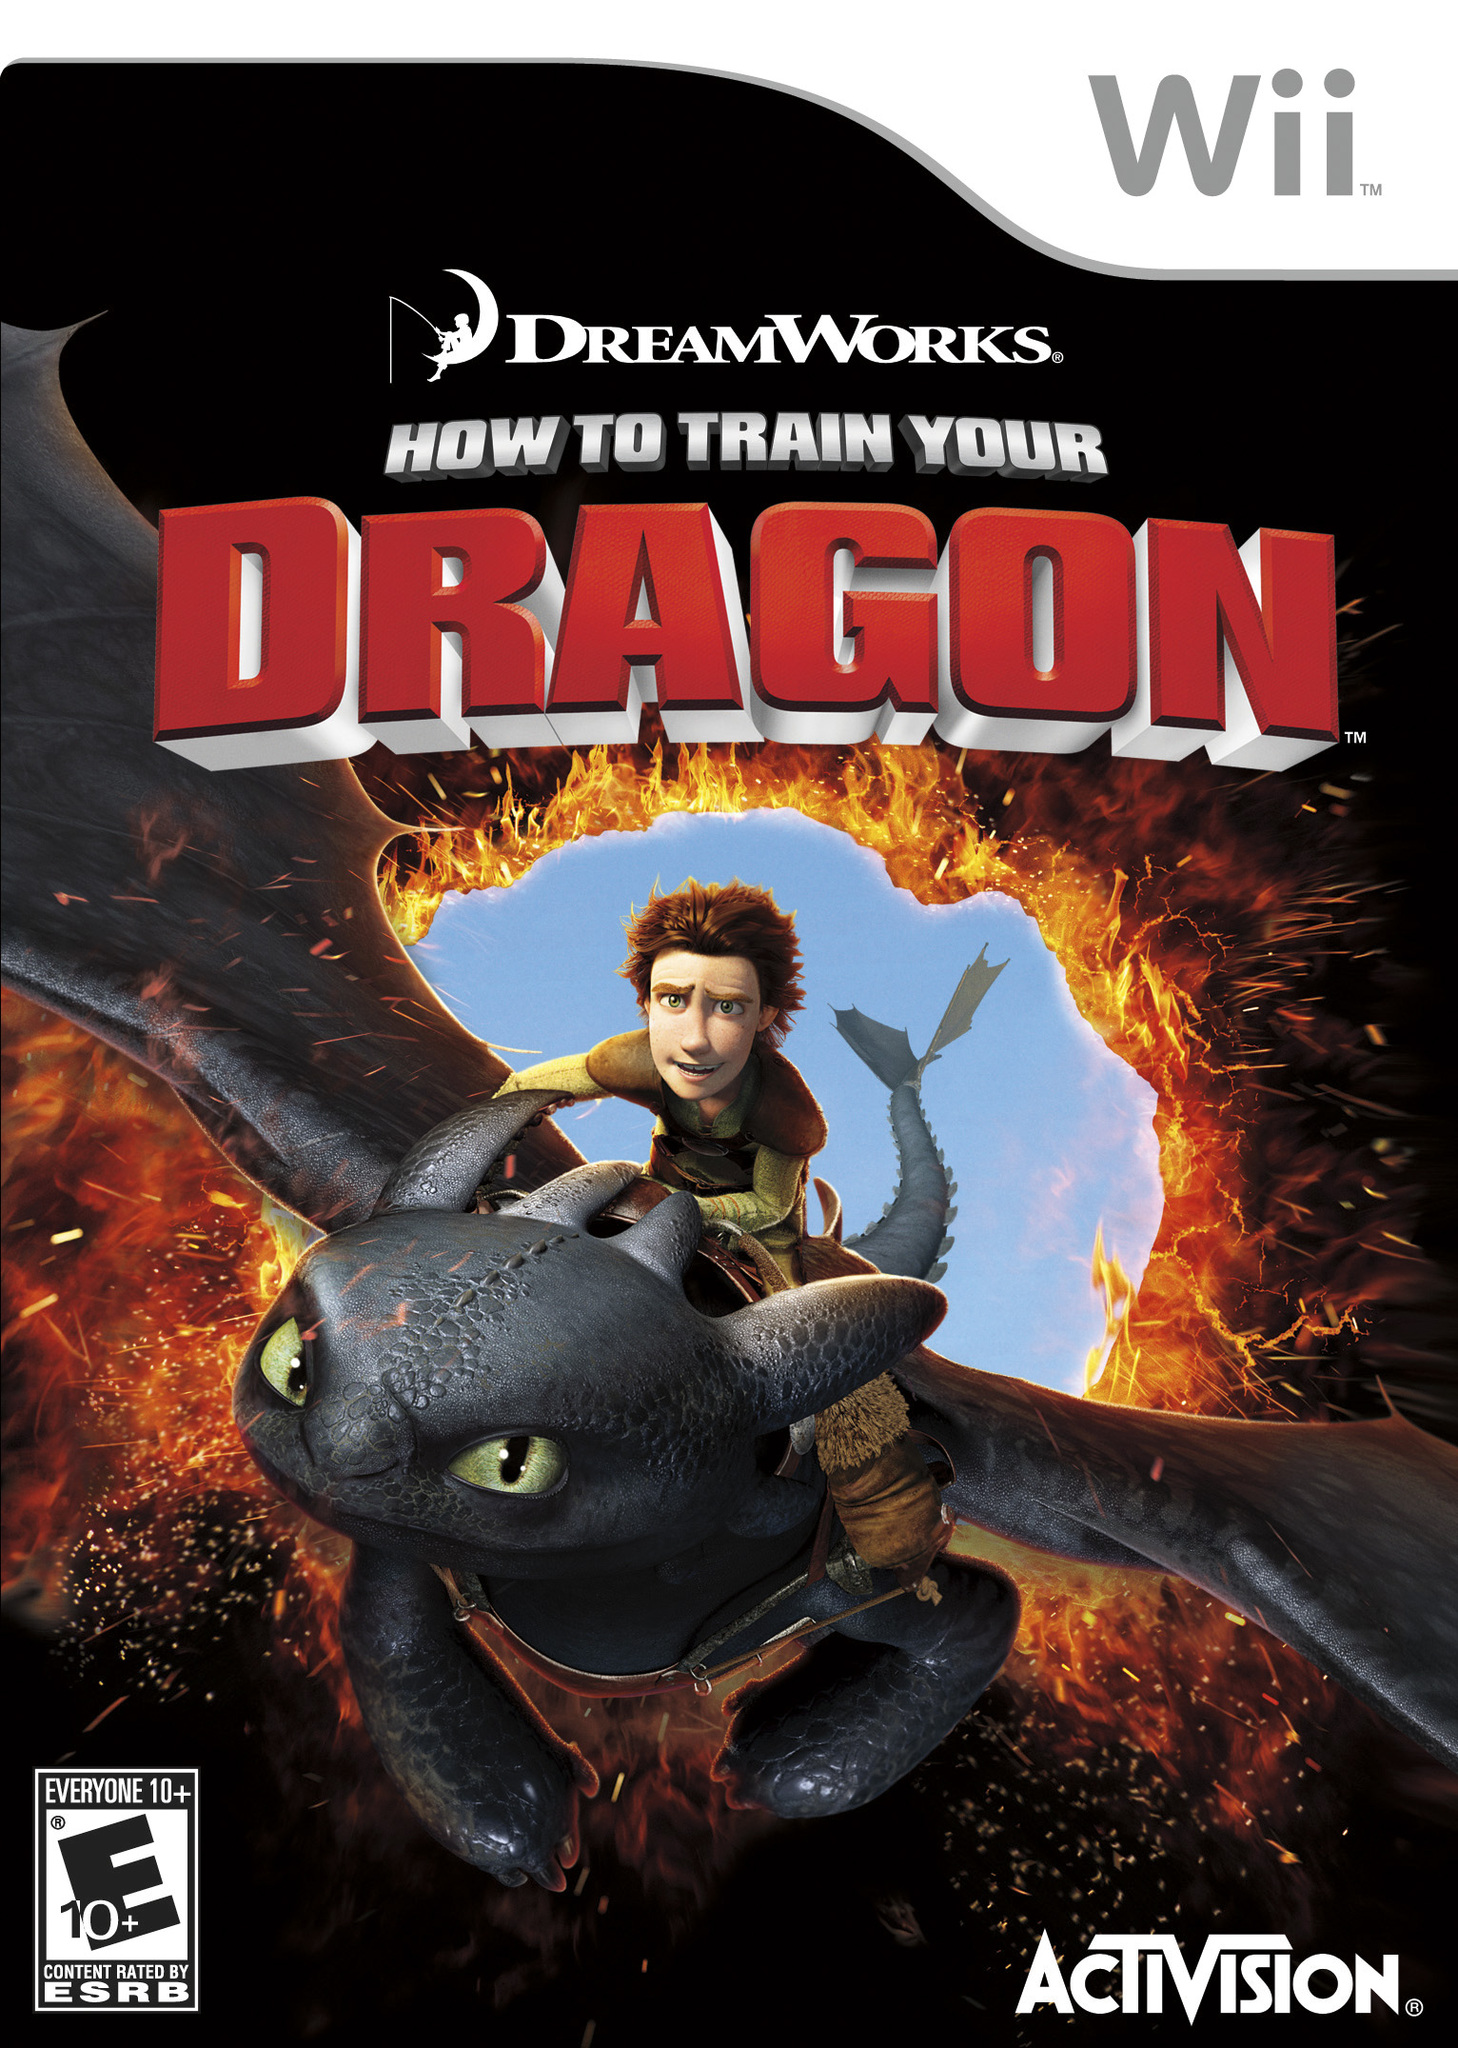 How To Train Your Dragon Video Game 2010 Imdb